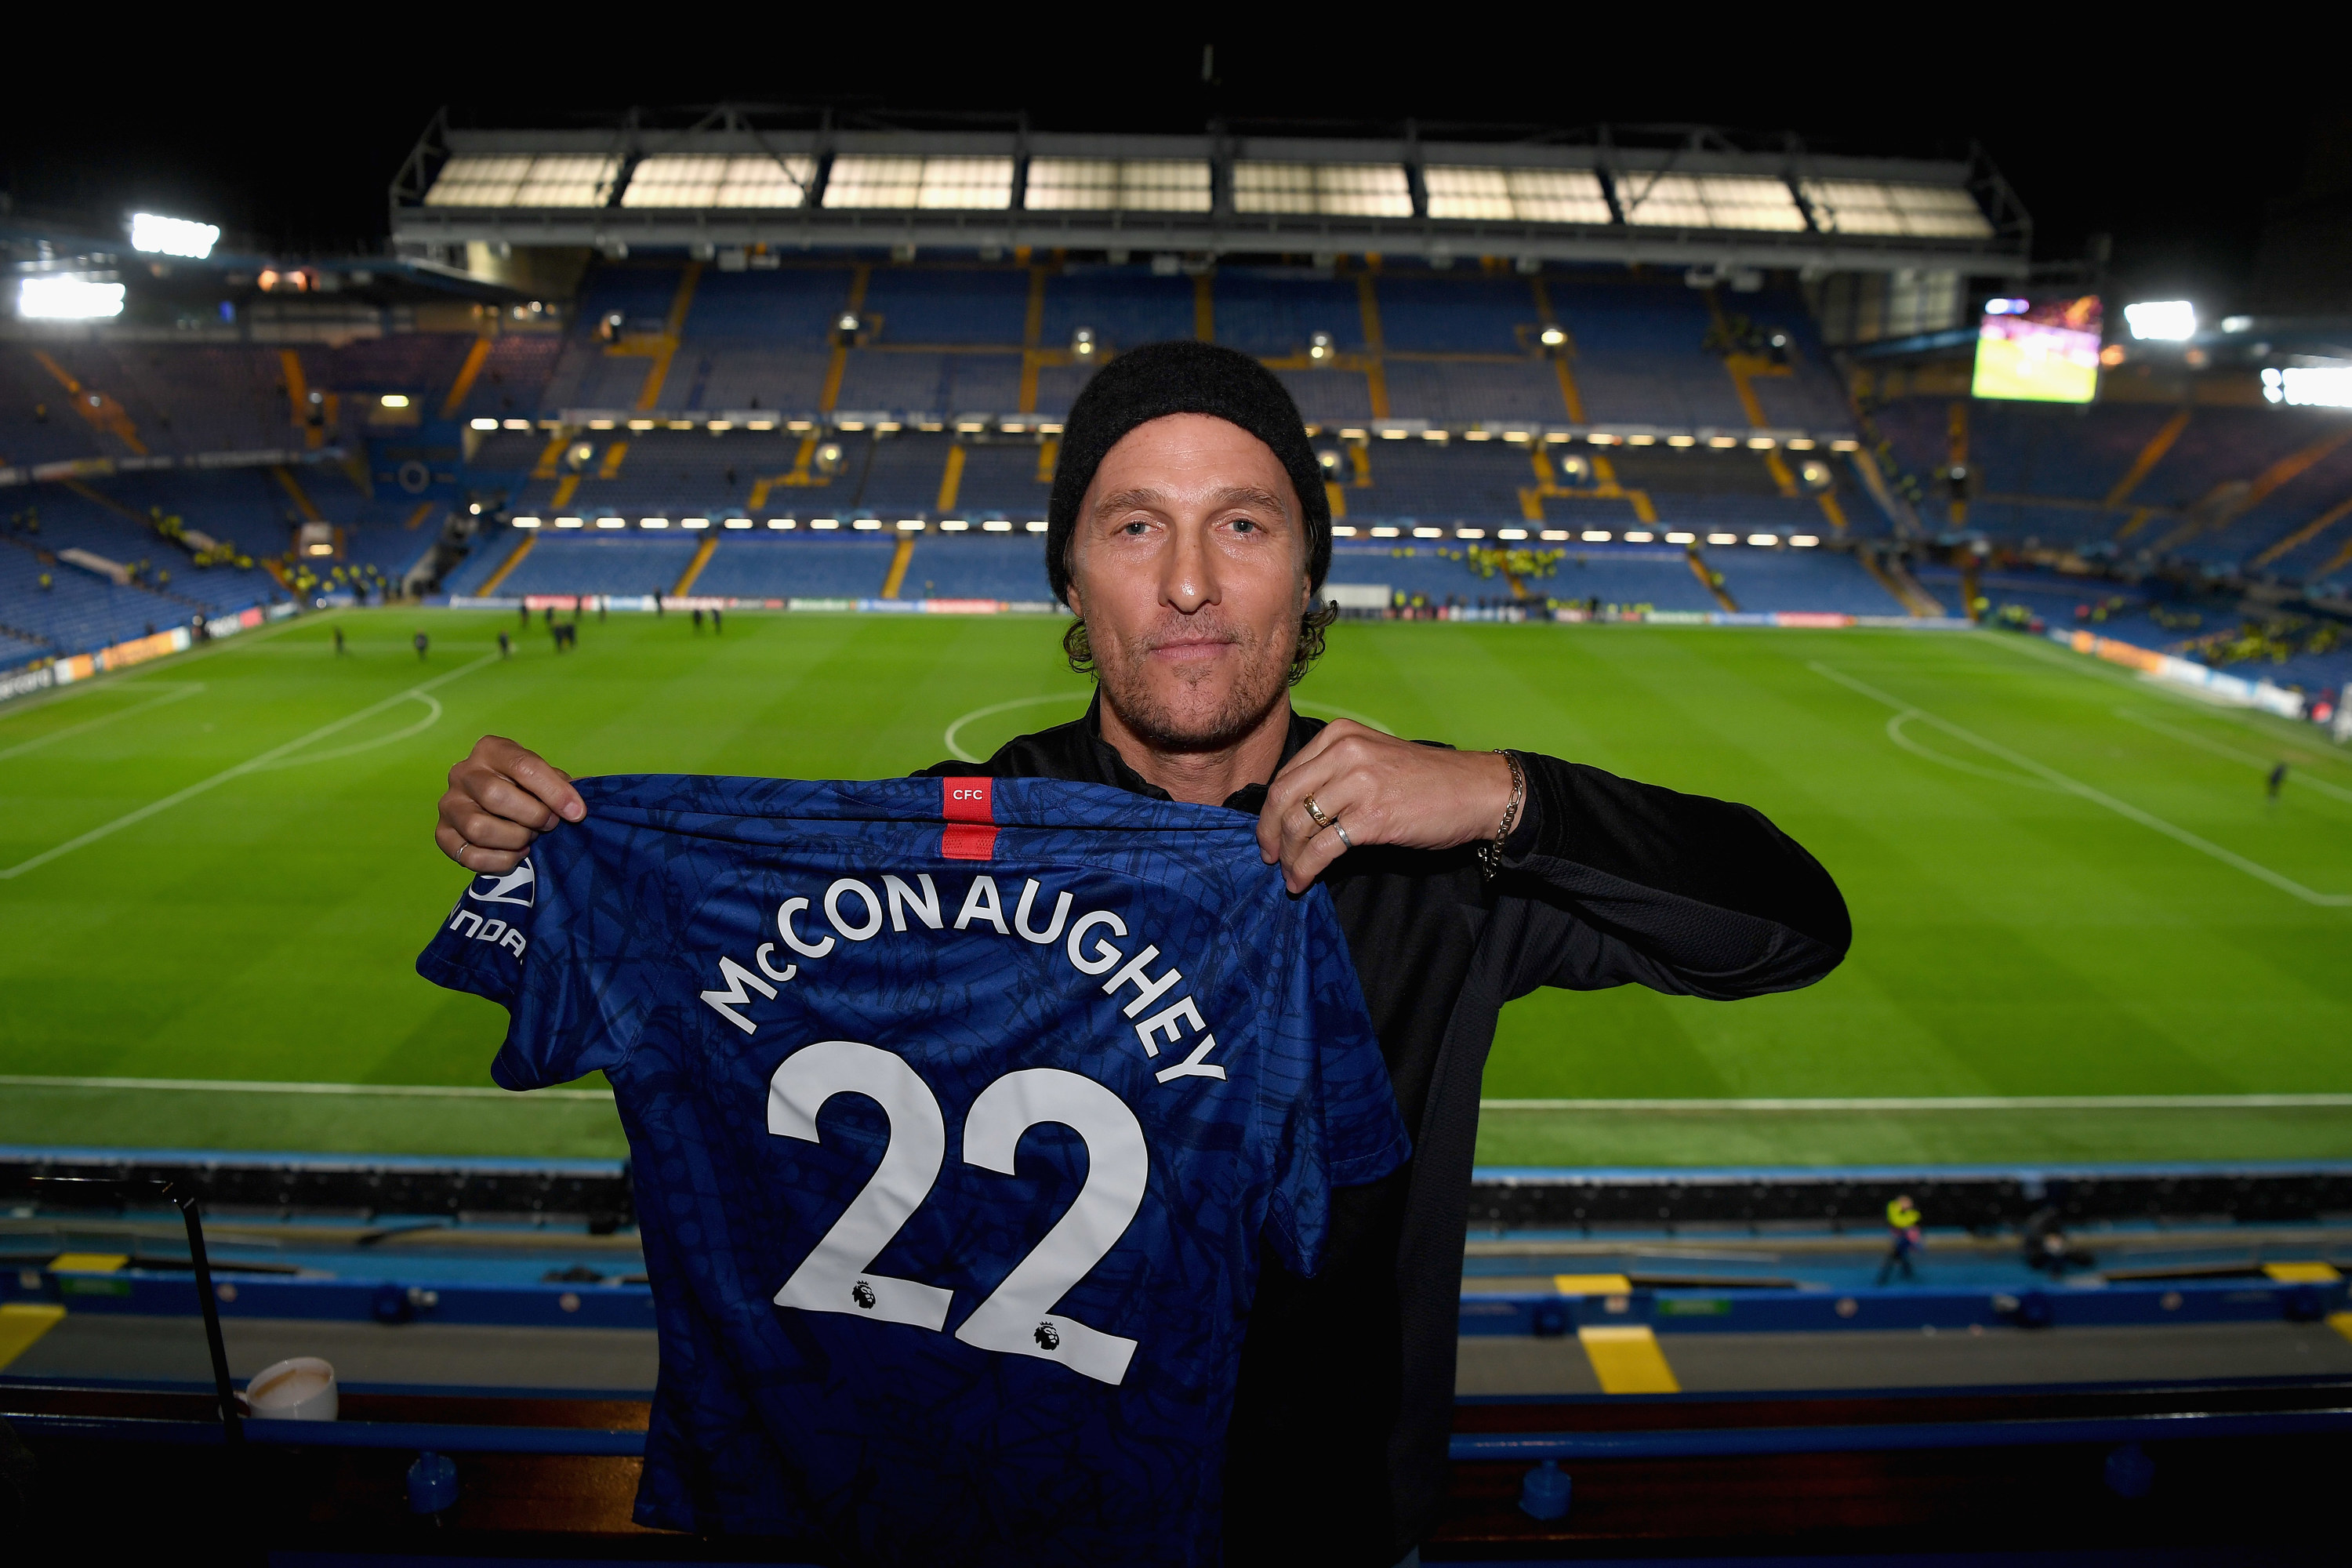 American actor Matthew McConaughey poses after the UEFA Champions League group H match between Chelsea FC and Lille OSC at Stamford Bridge on December 10, 2019 in London, United Kingdom.